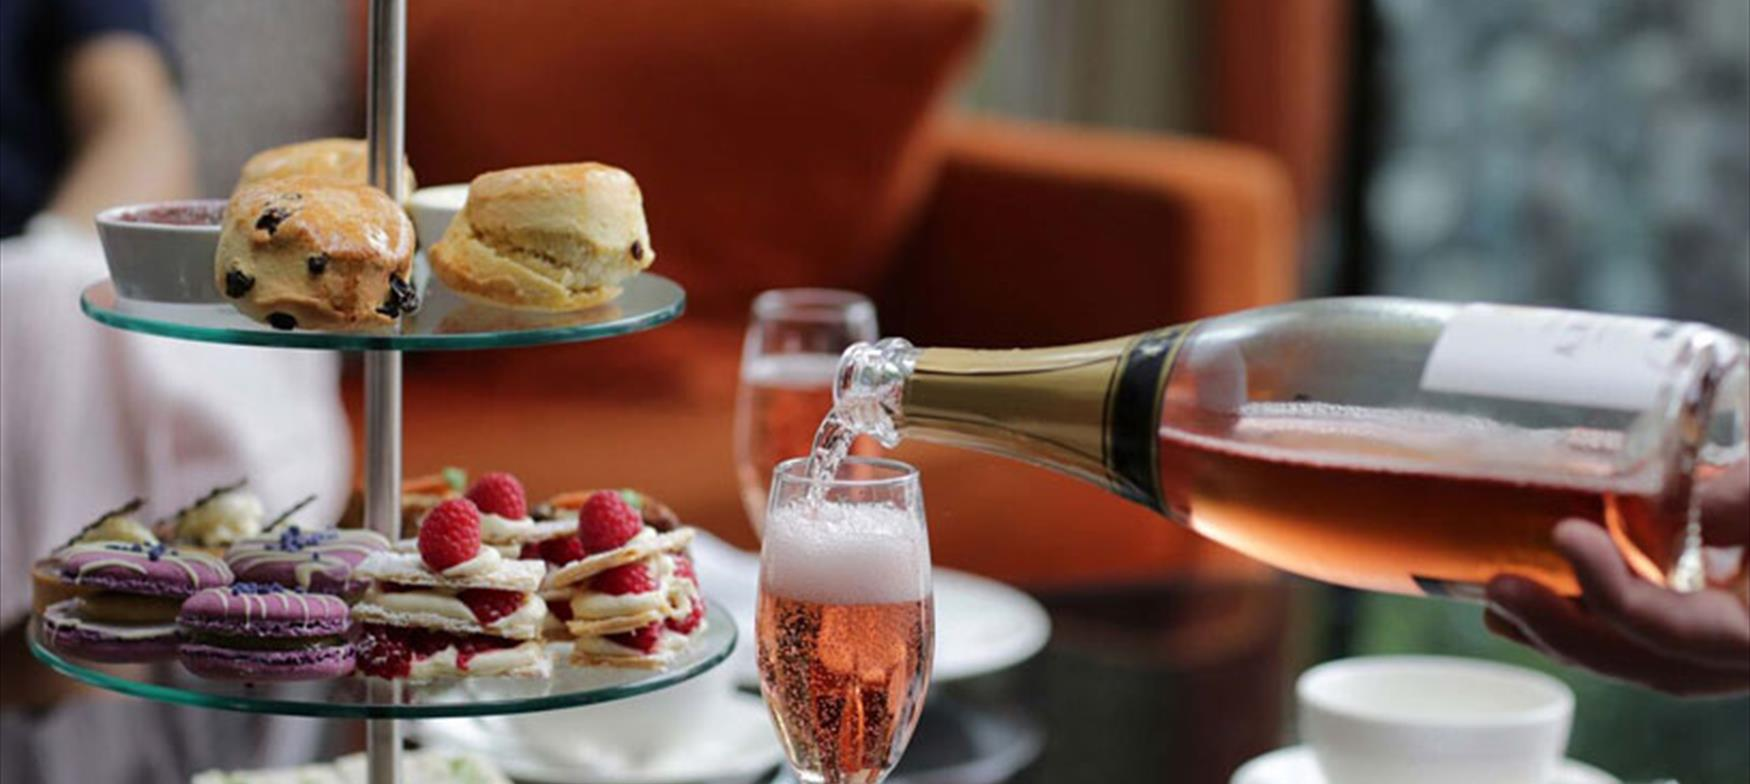 Champagne being poured, with scones and cakes in the background